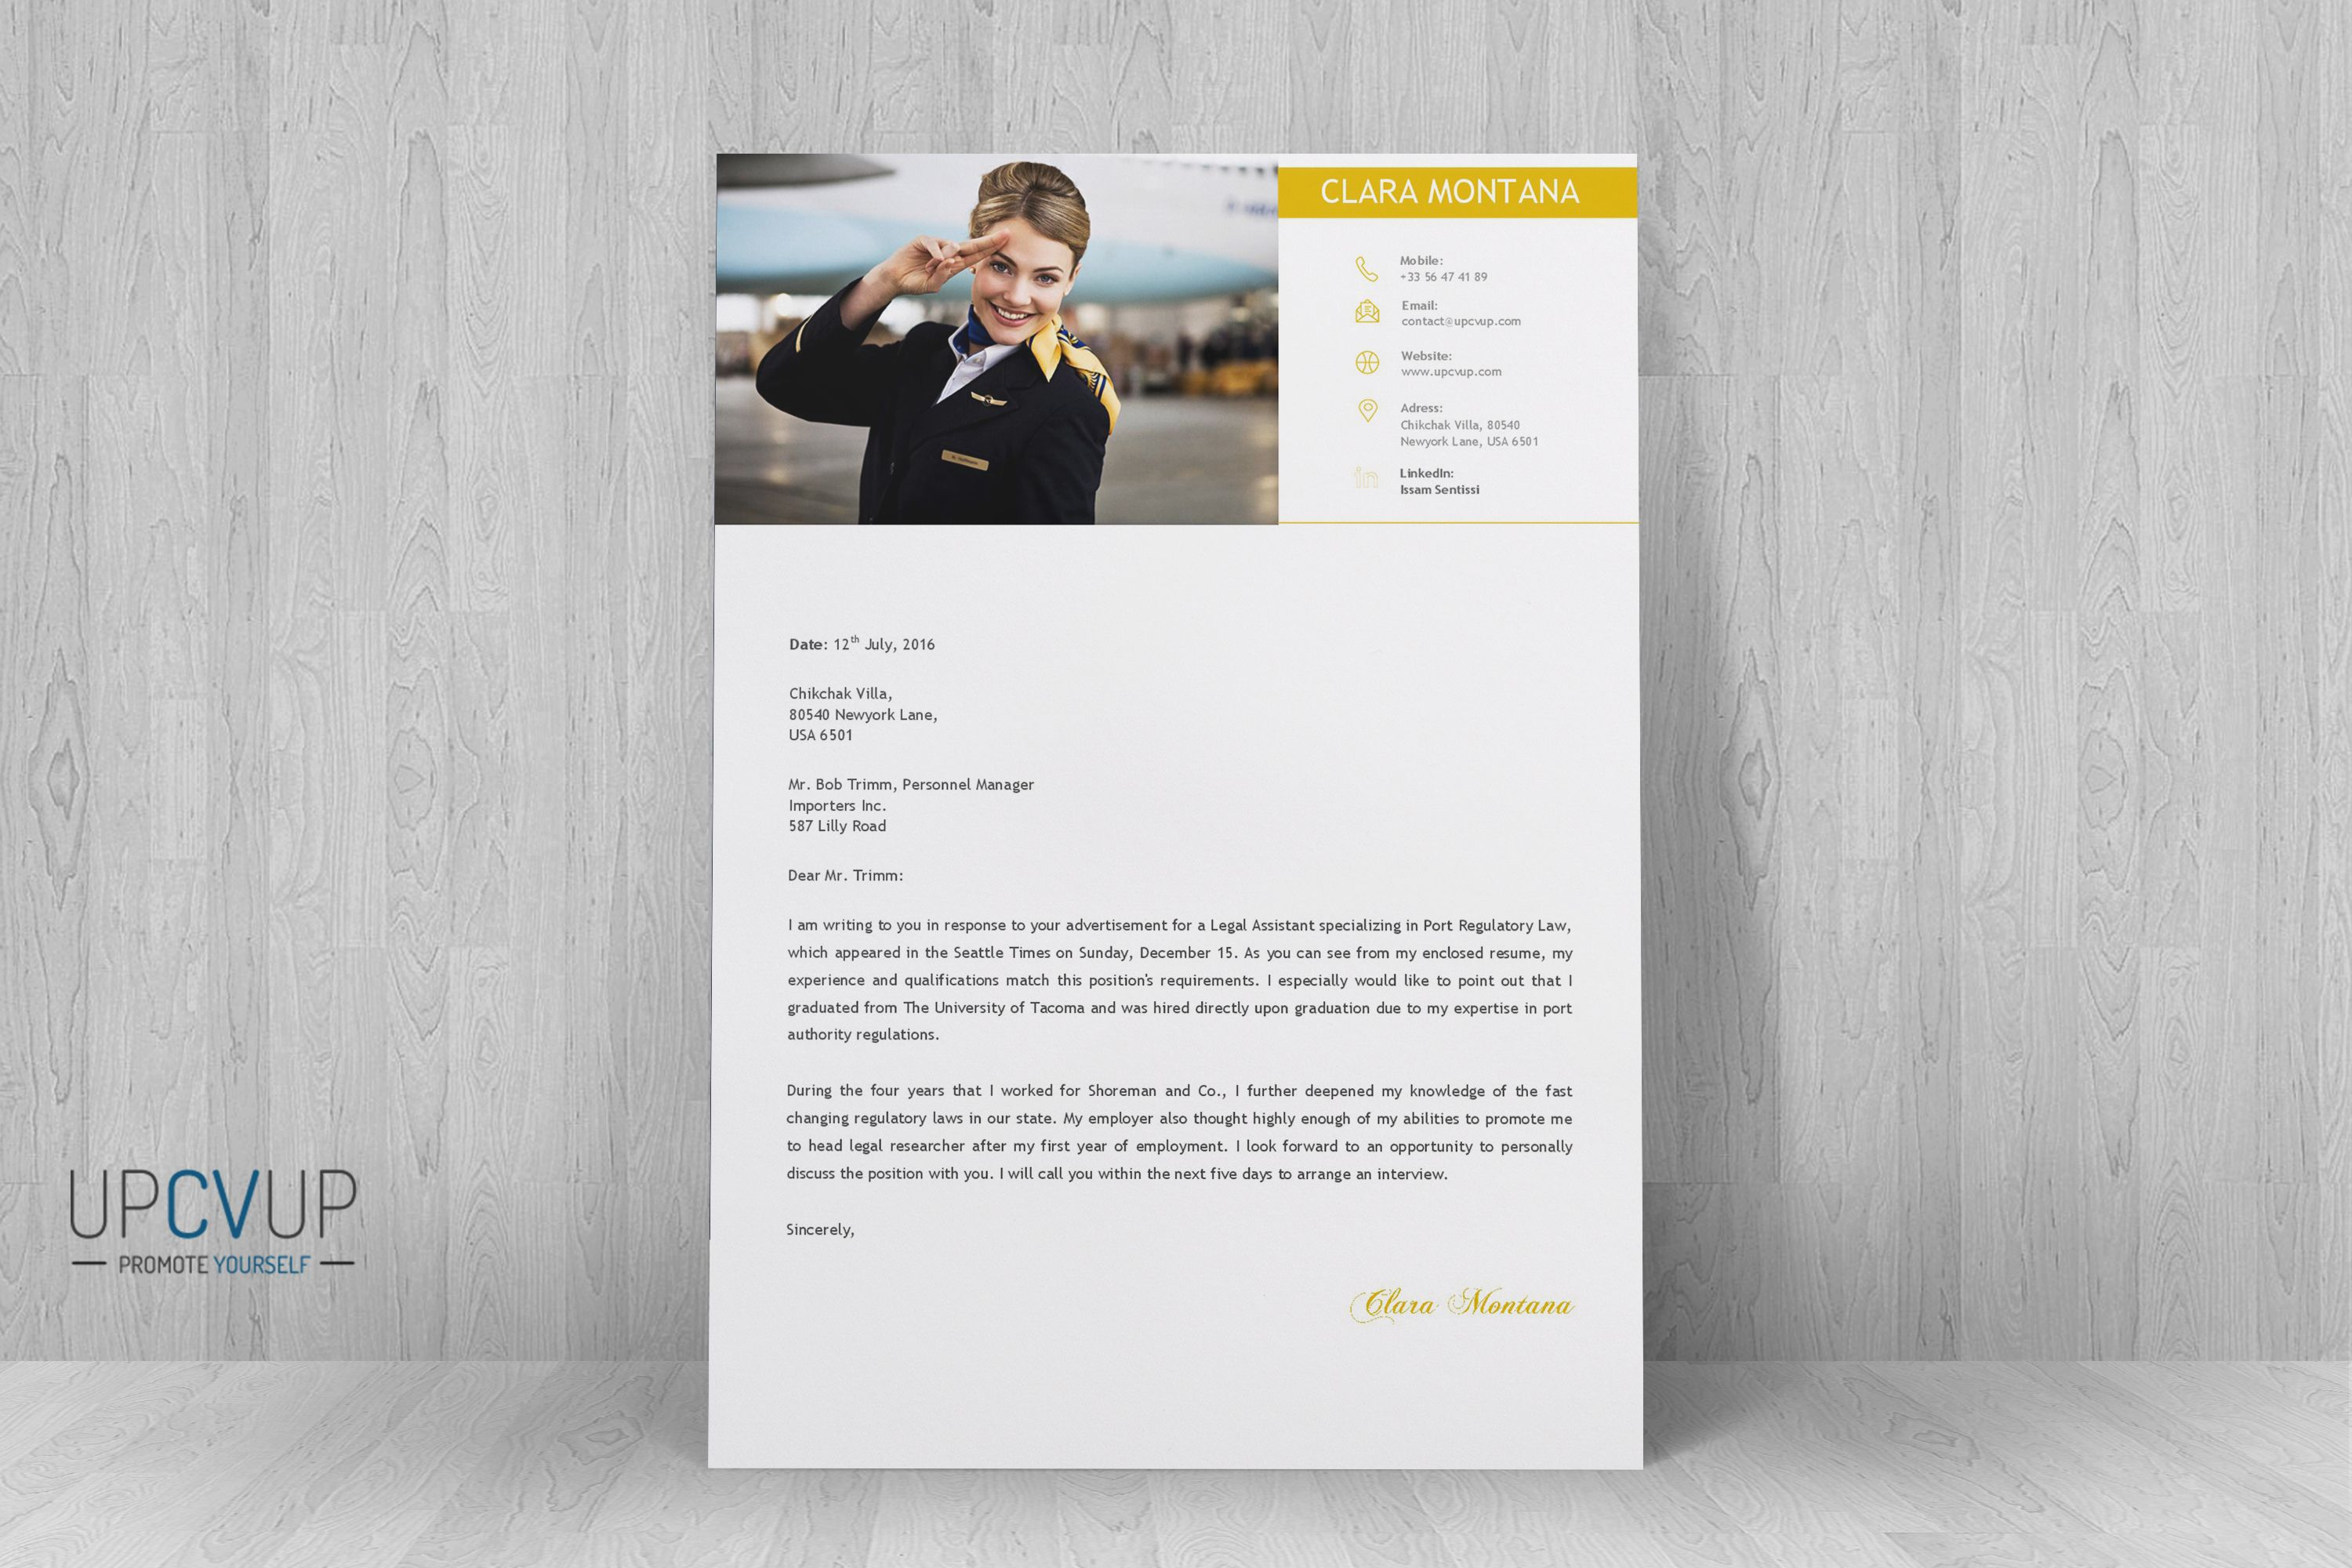 Cabin crew flight attendant modern resume cv template cover cabin crew flight attendant modern resume cv template cover letter design for word yelopaper Image collections